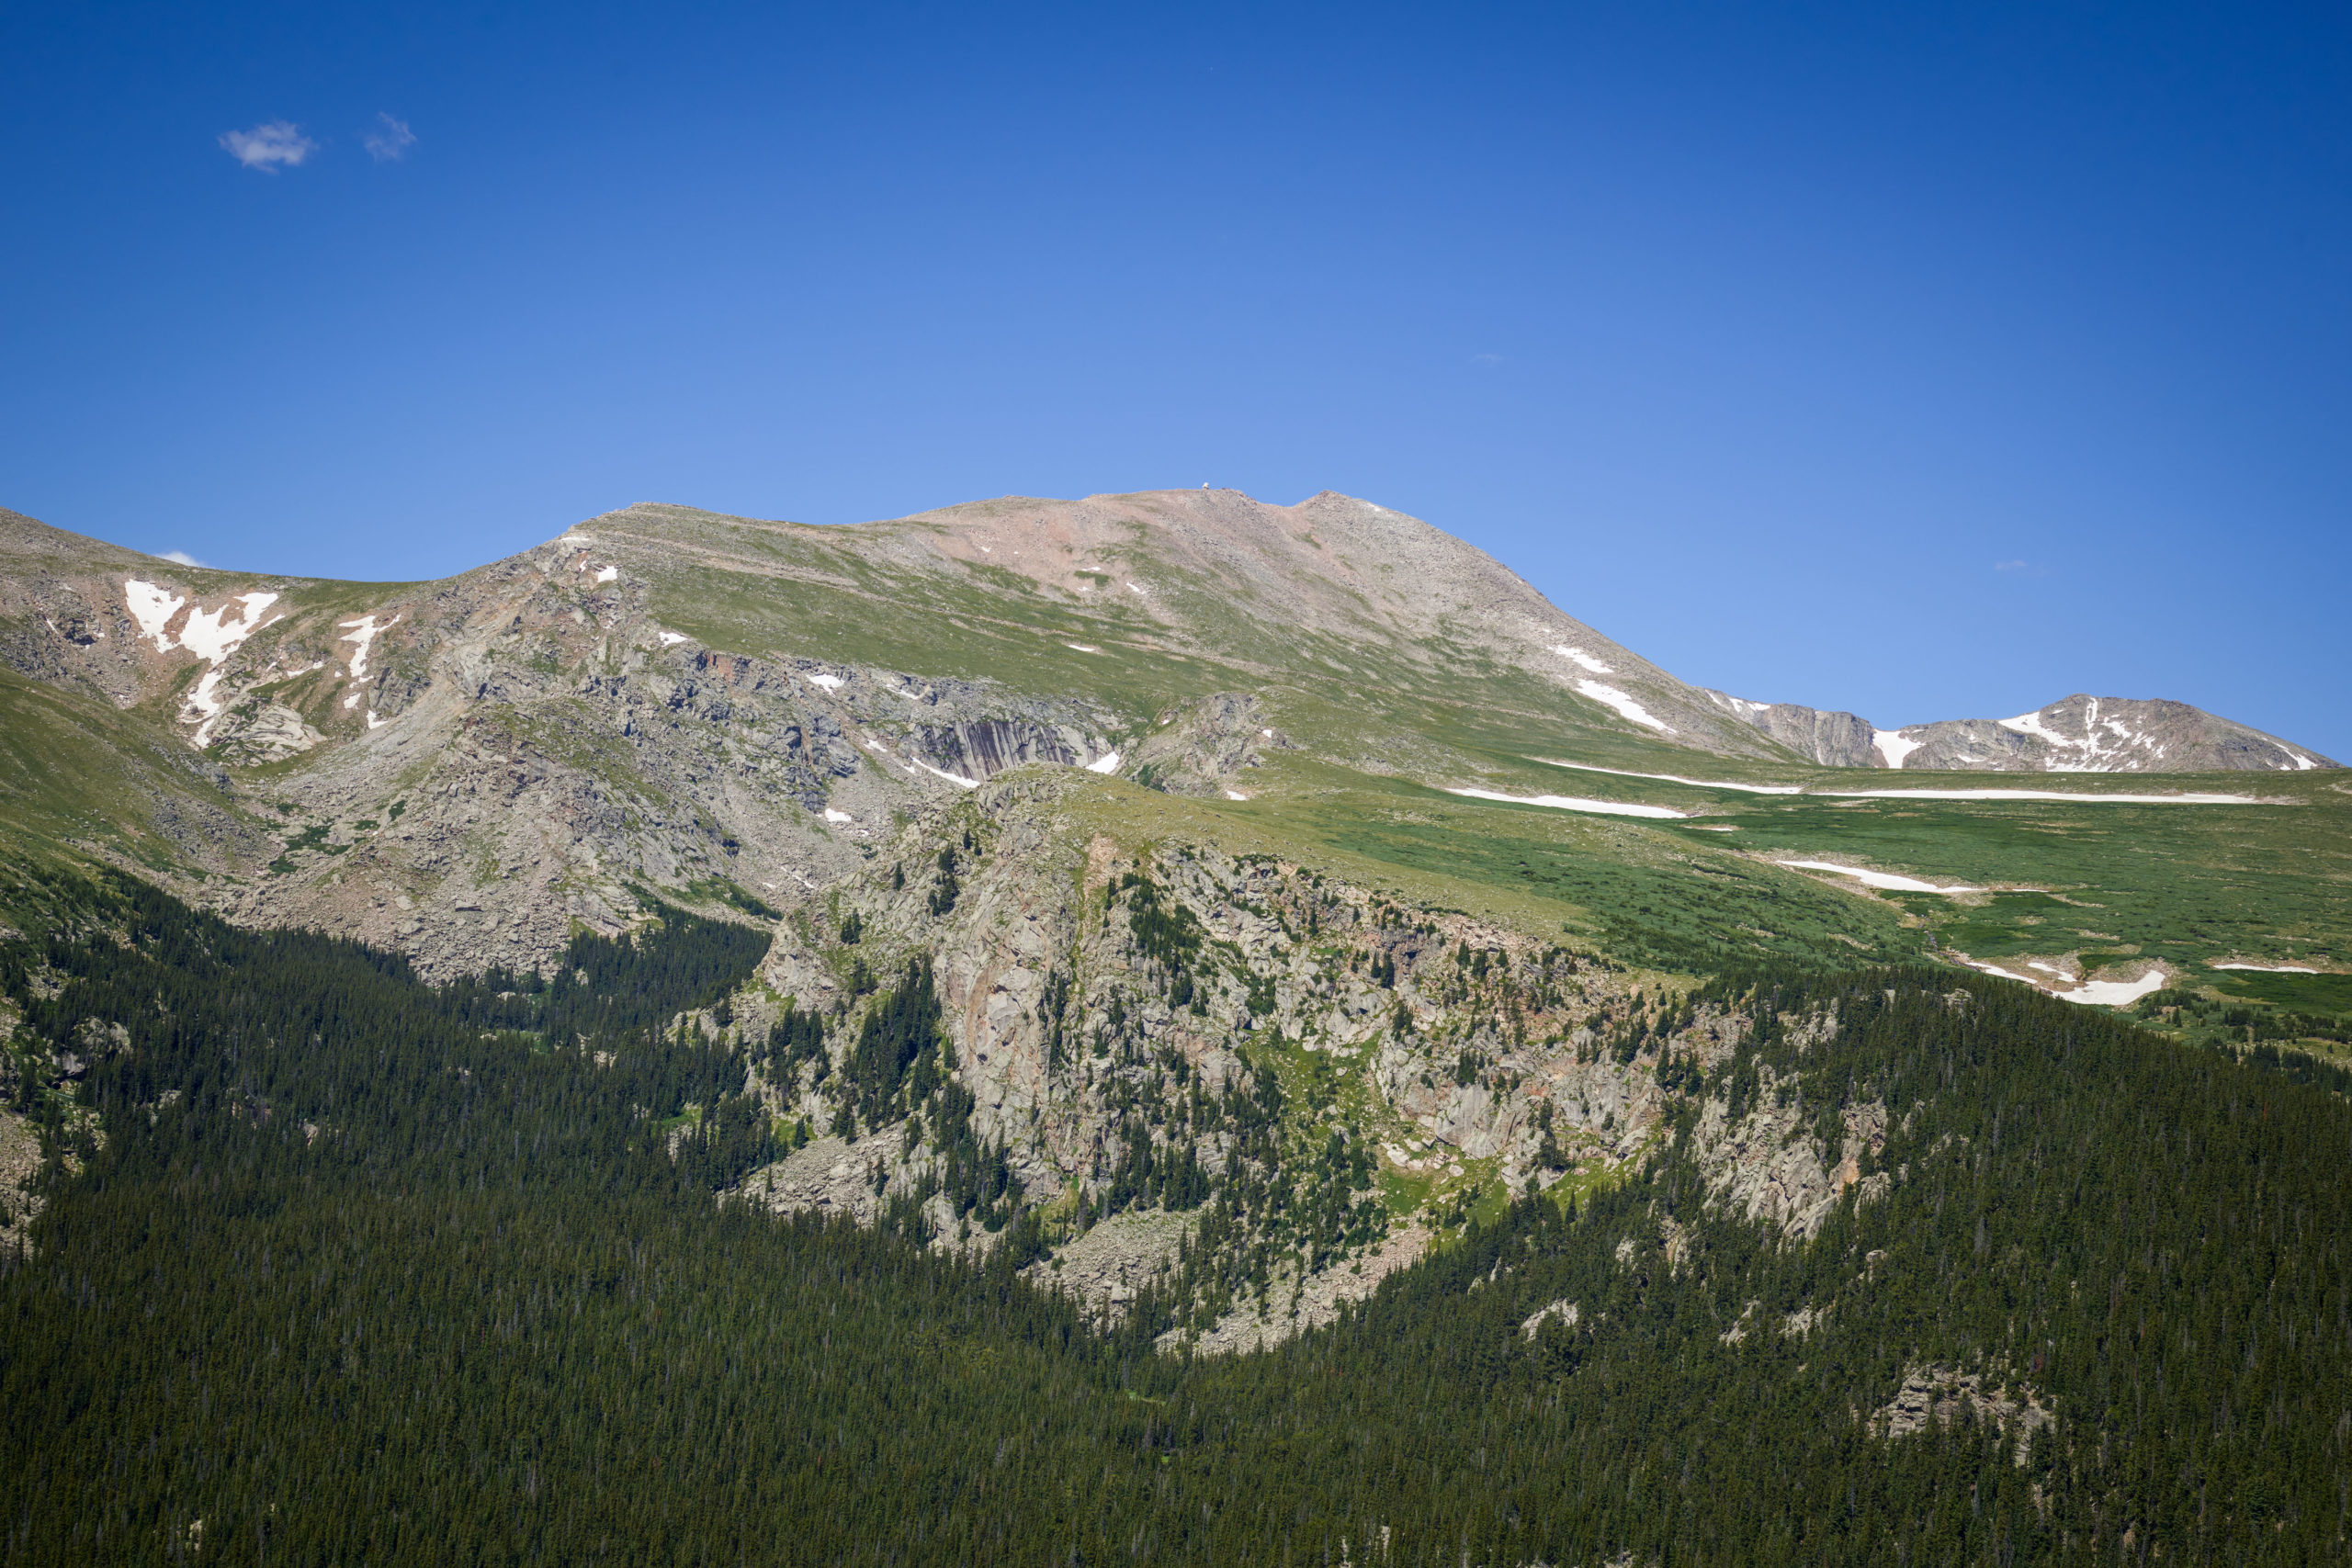 Aerial view of Mount Evans, at 14,241 feet the highest peak in the Chicago Peaks of the Front Range of the Rocky Mountains, in Gilpin County, Colo., July 10, 2016.